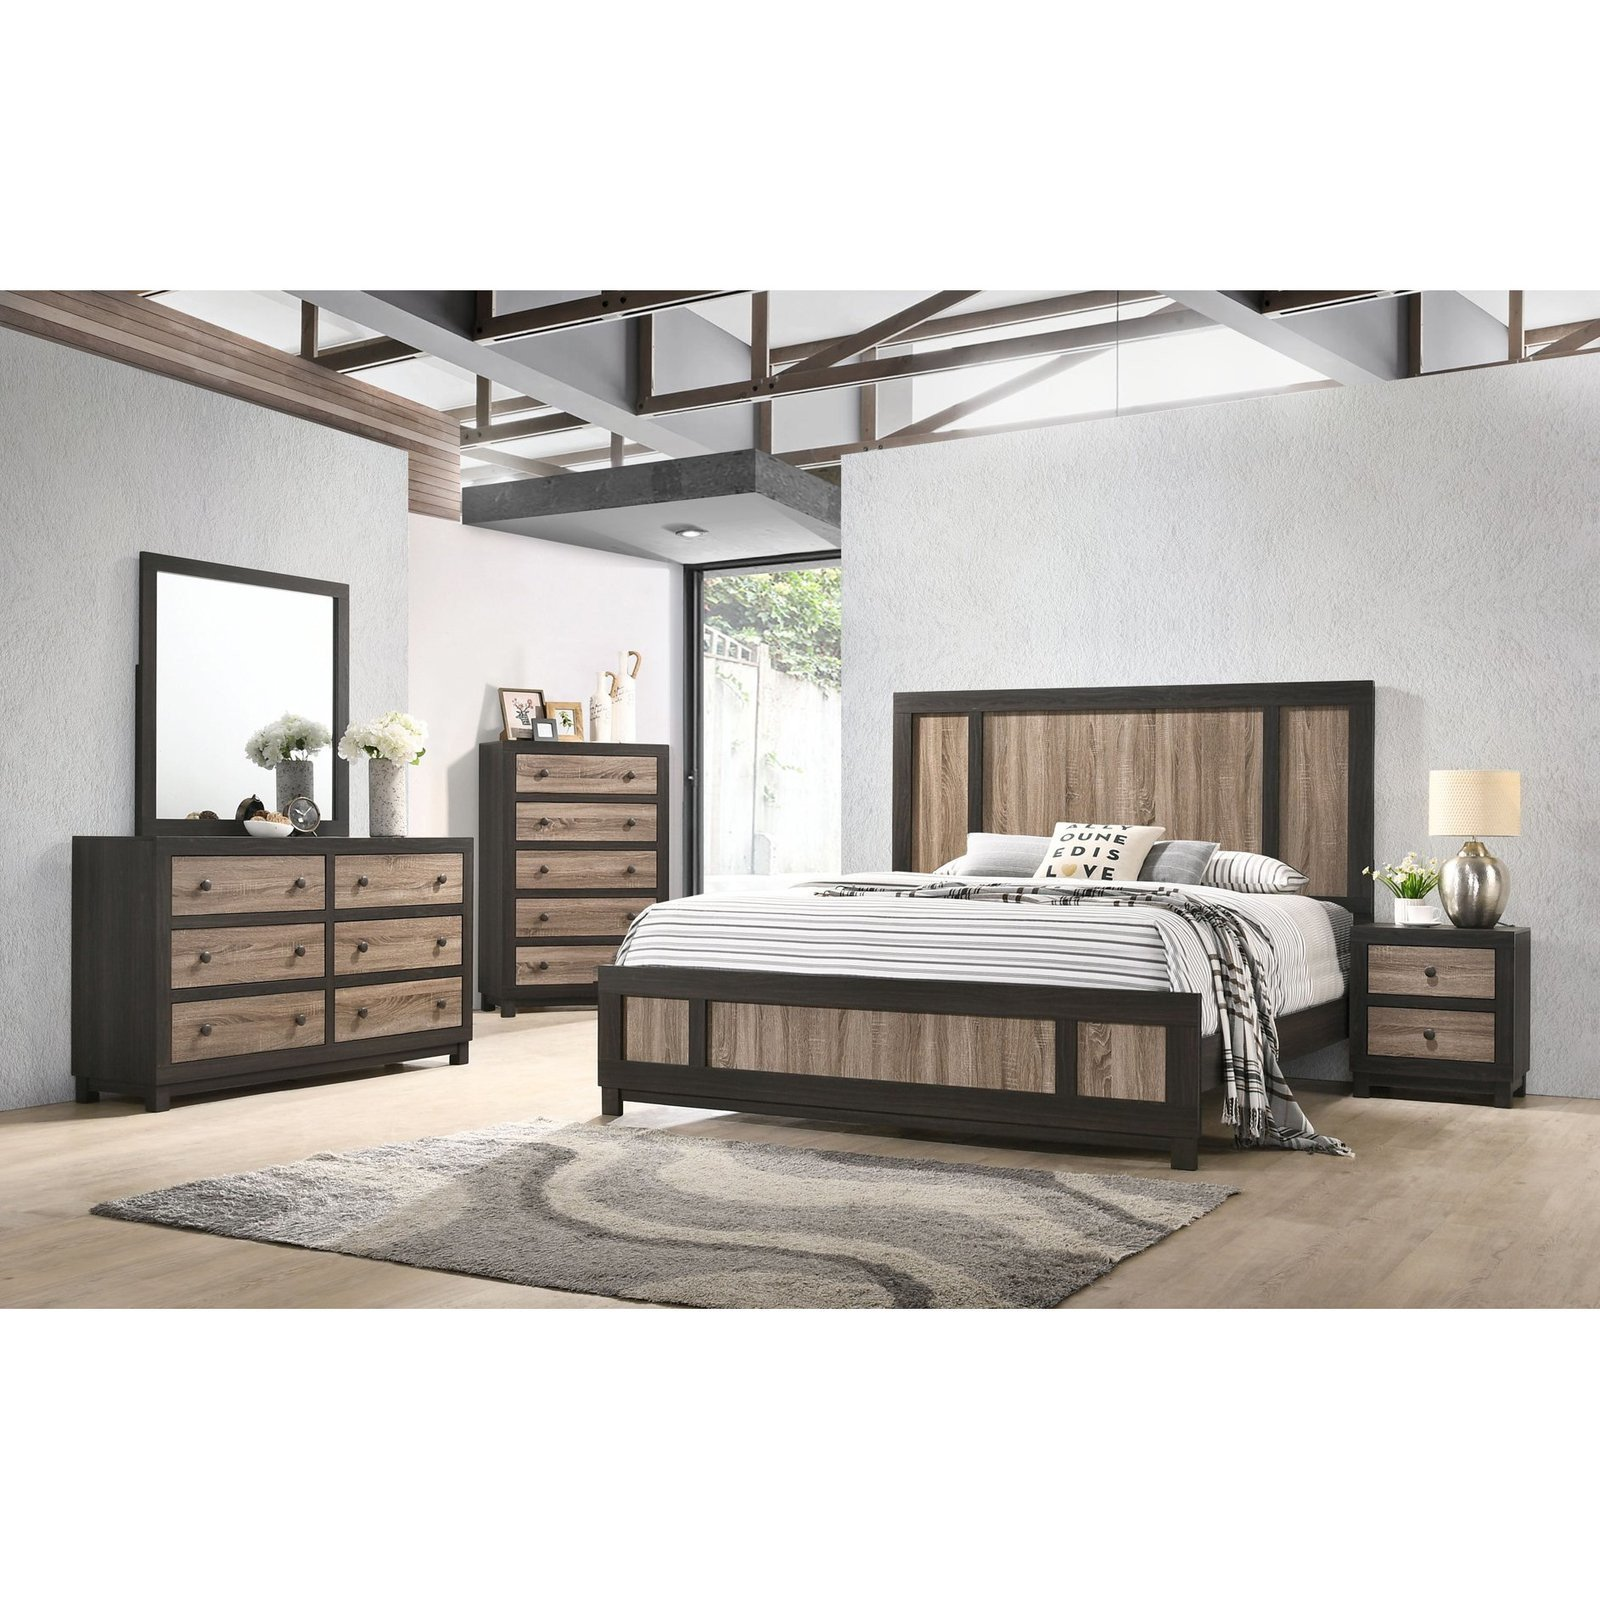 Bedroom Furniture Sale Clearance Best Of Clearance Furniture Fair